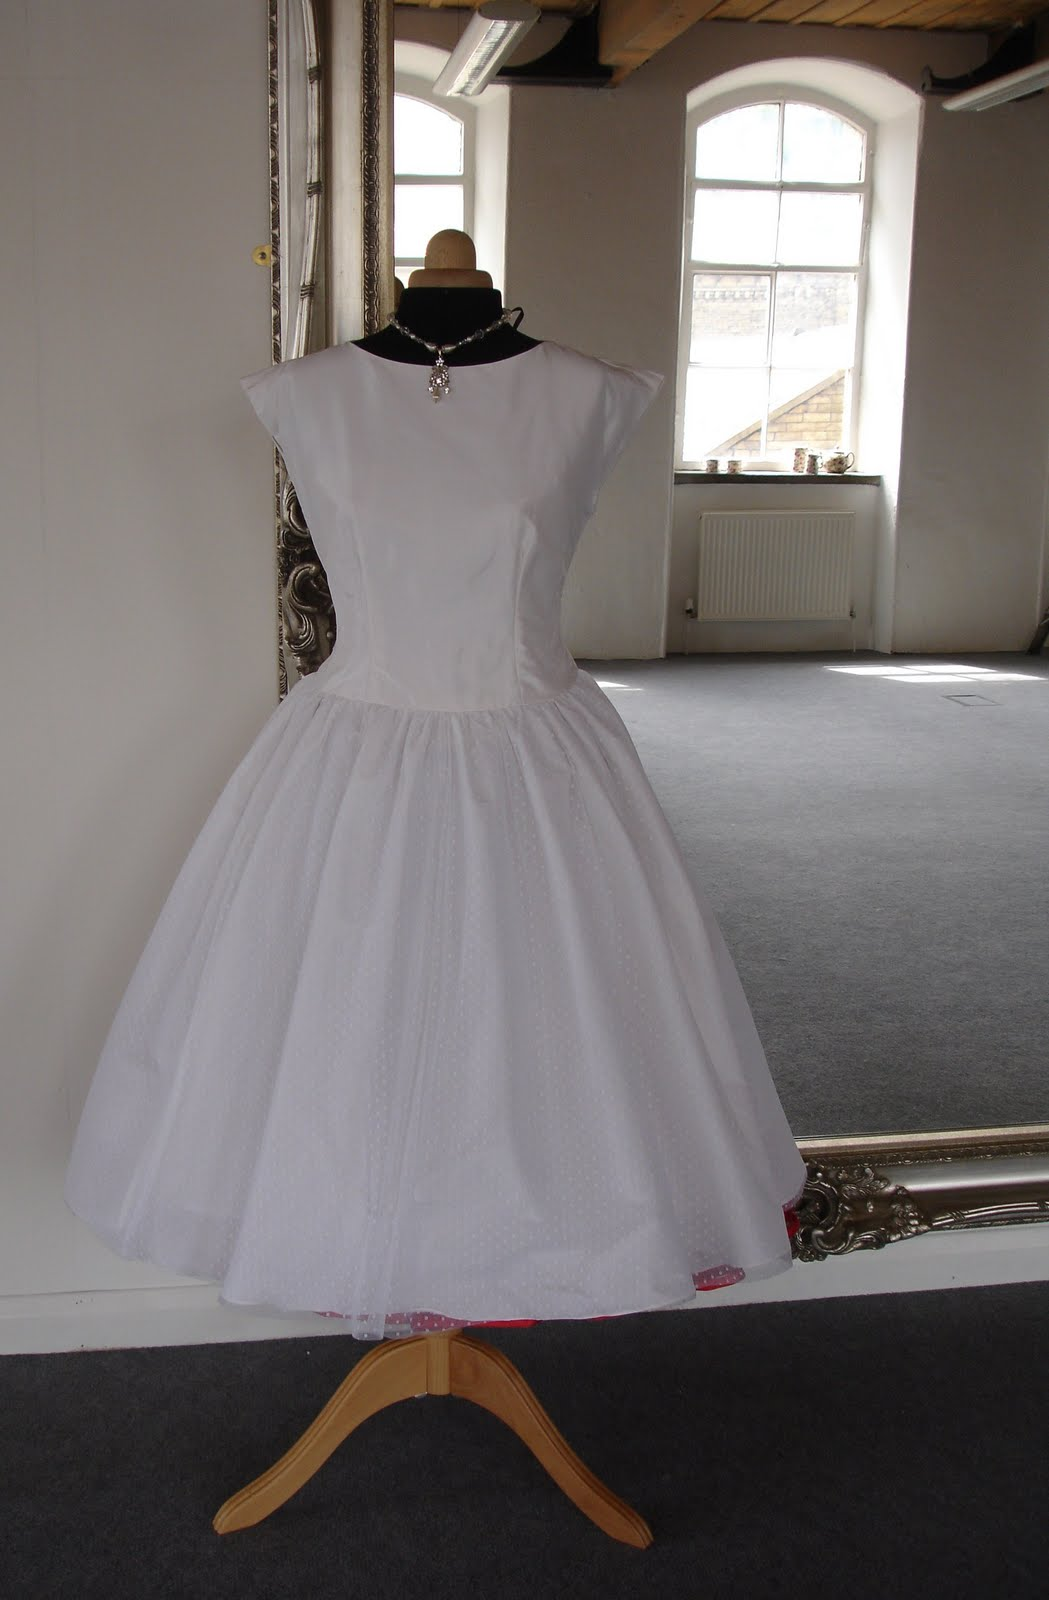 No. 9: Vintage wedding gown for sale.